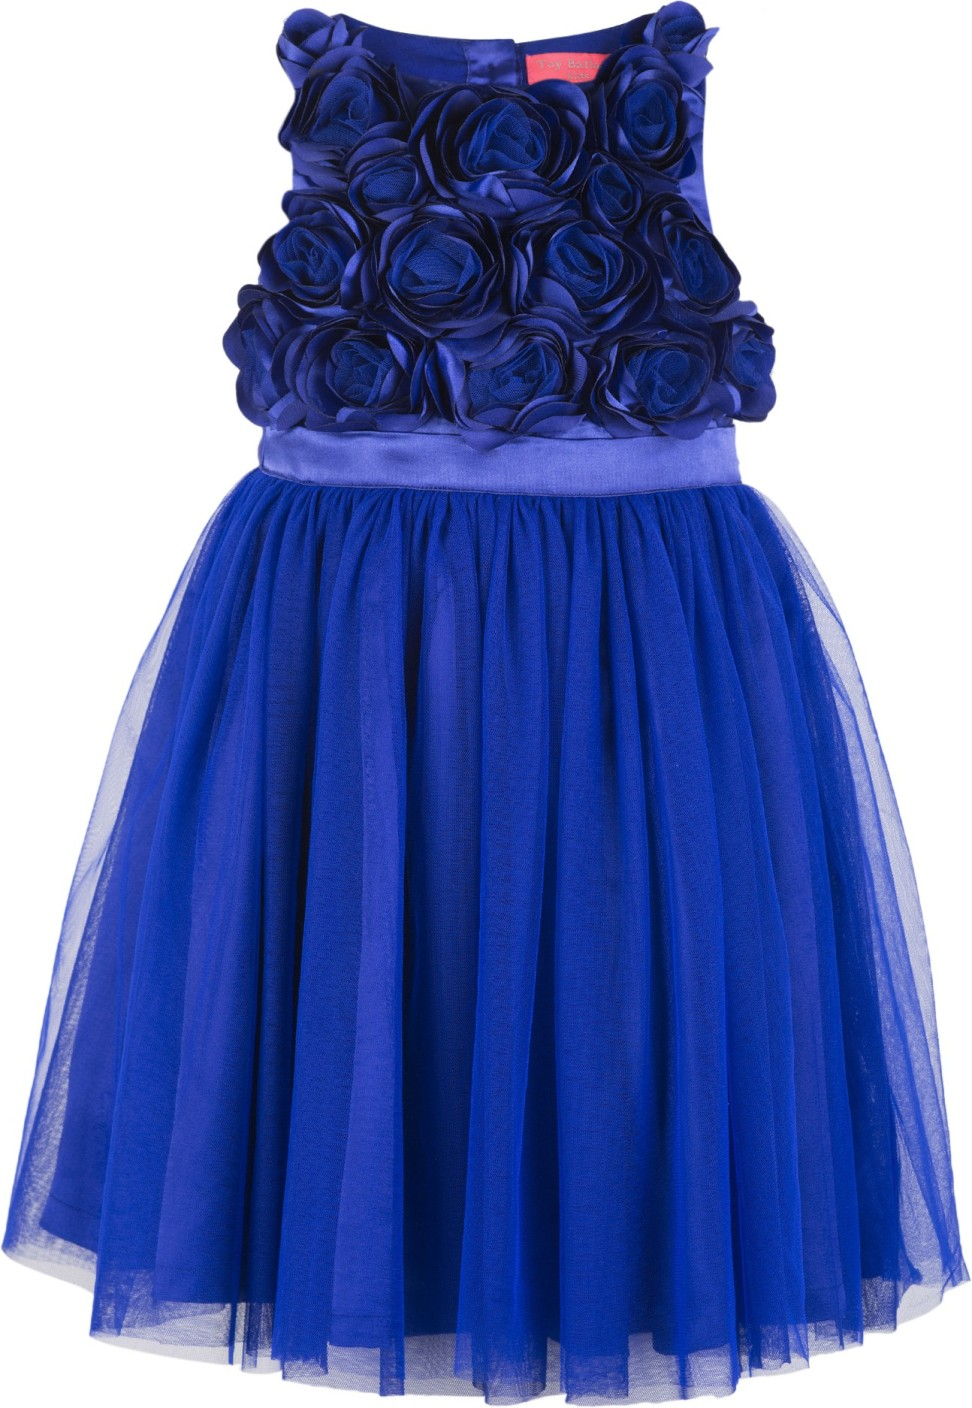 Toy Balloon Kids Girls Midi/Knee Length Party Dress Price ...